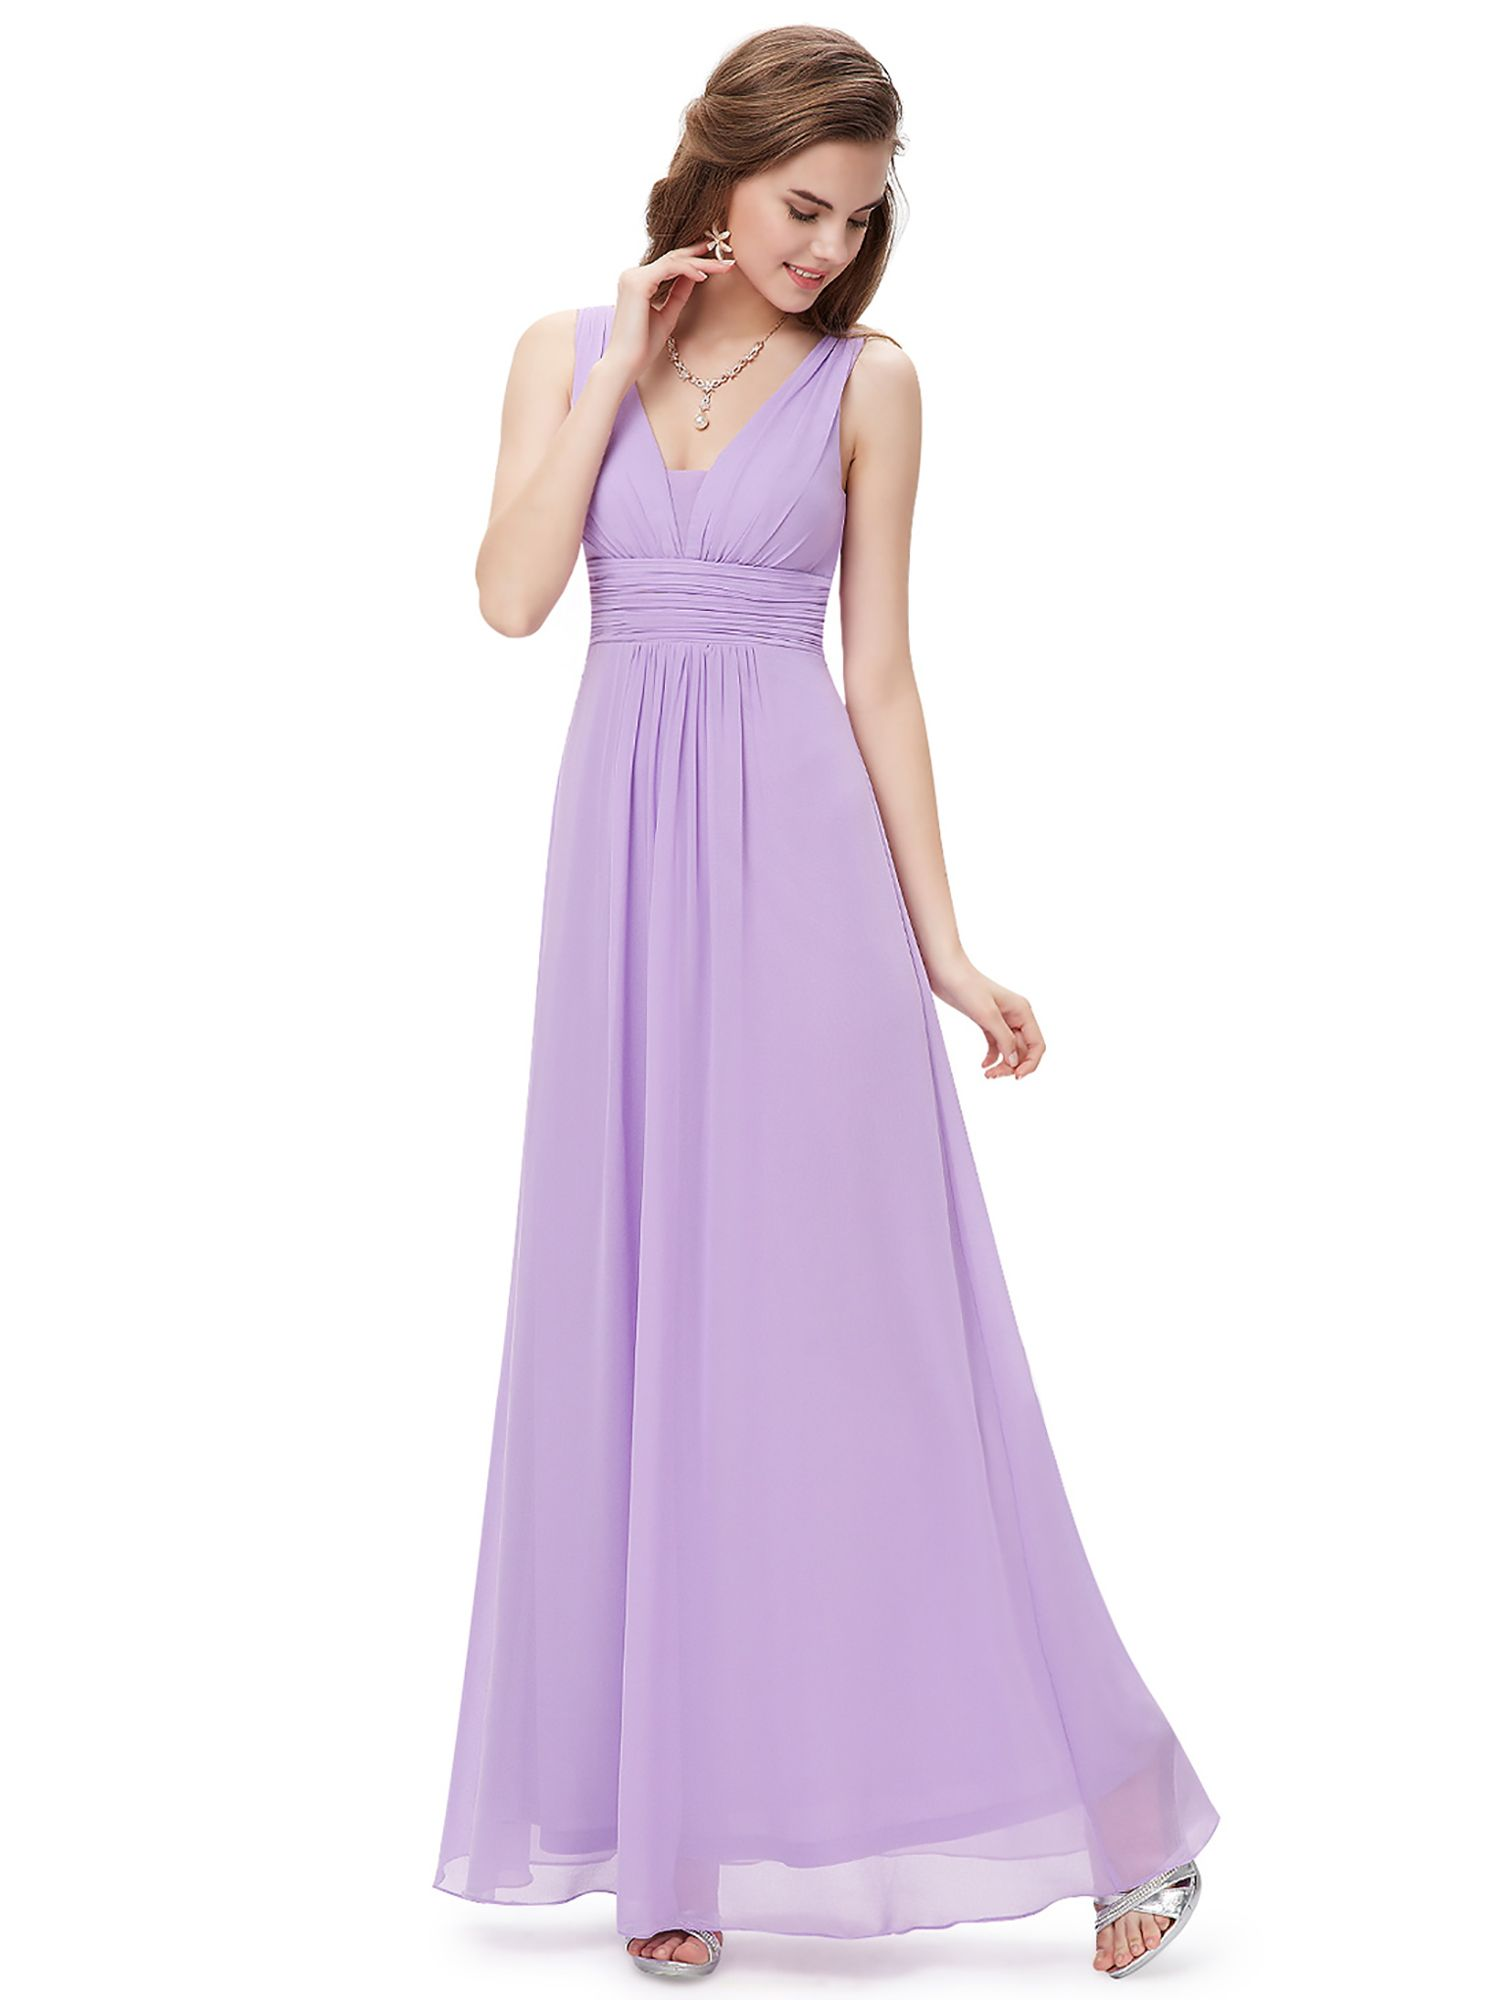 c81a7c575e3 Ever-Pretty Women s Elegant Long V-Neck Evening Party Maxi Dress Prom Gown  Bridesmaid